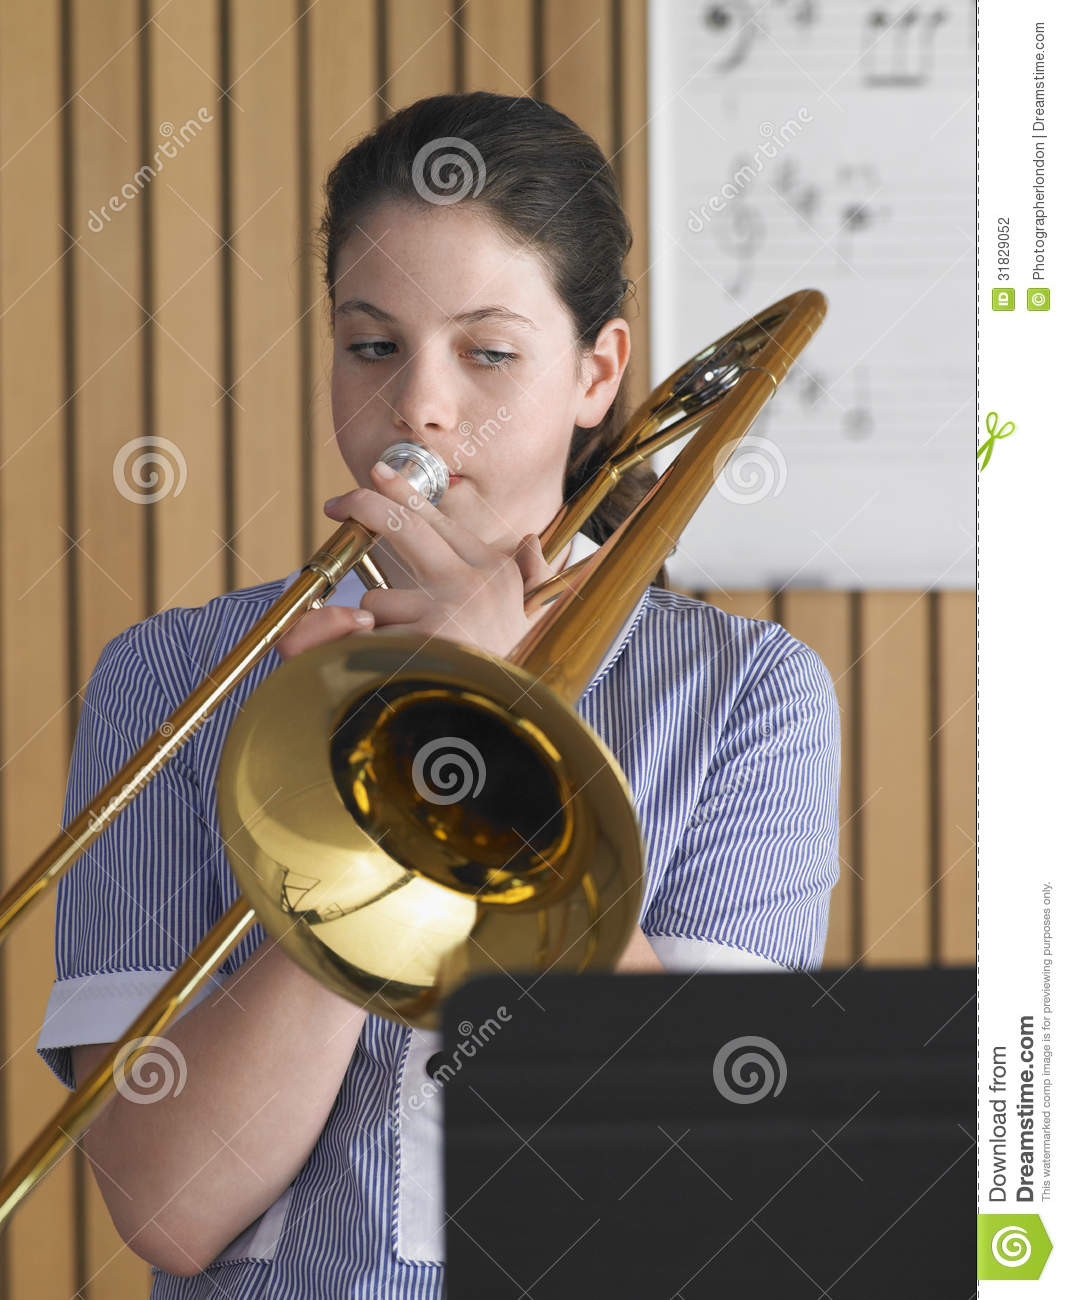 High school girl playing trombone in music class.